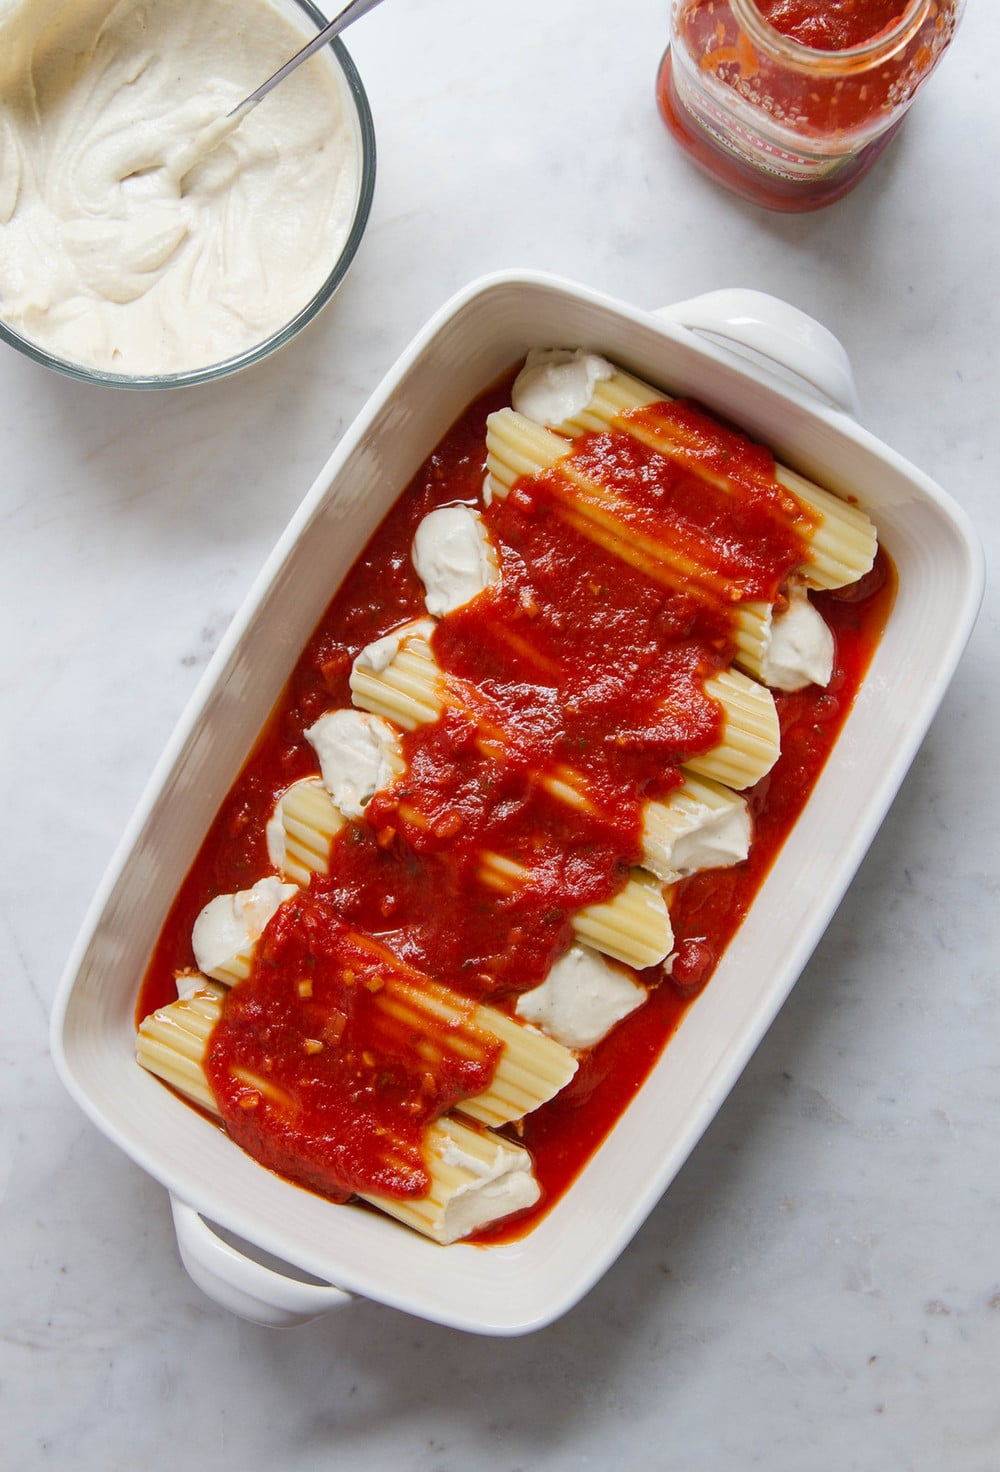 top down view of rectangular baking dish with freshly cooked and filled manicotti shells with cashew ricotta cheese and topped with pasta sauce